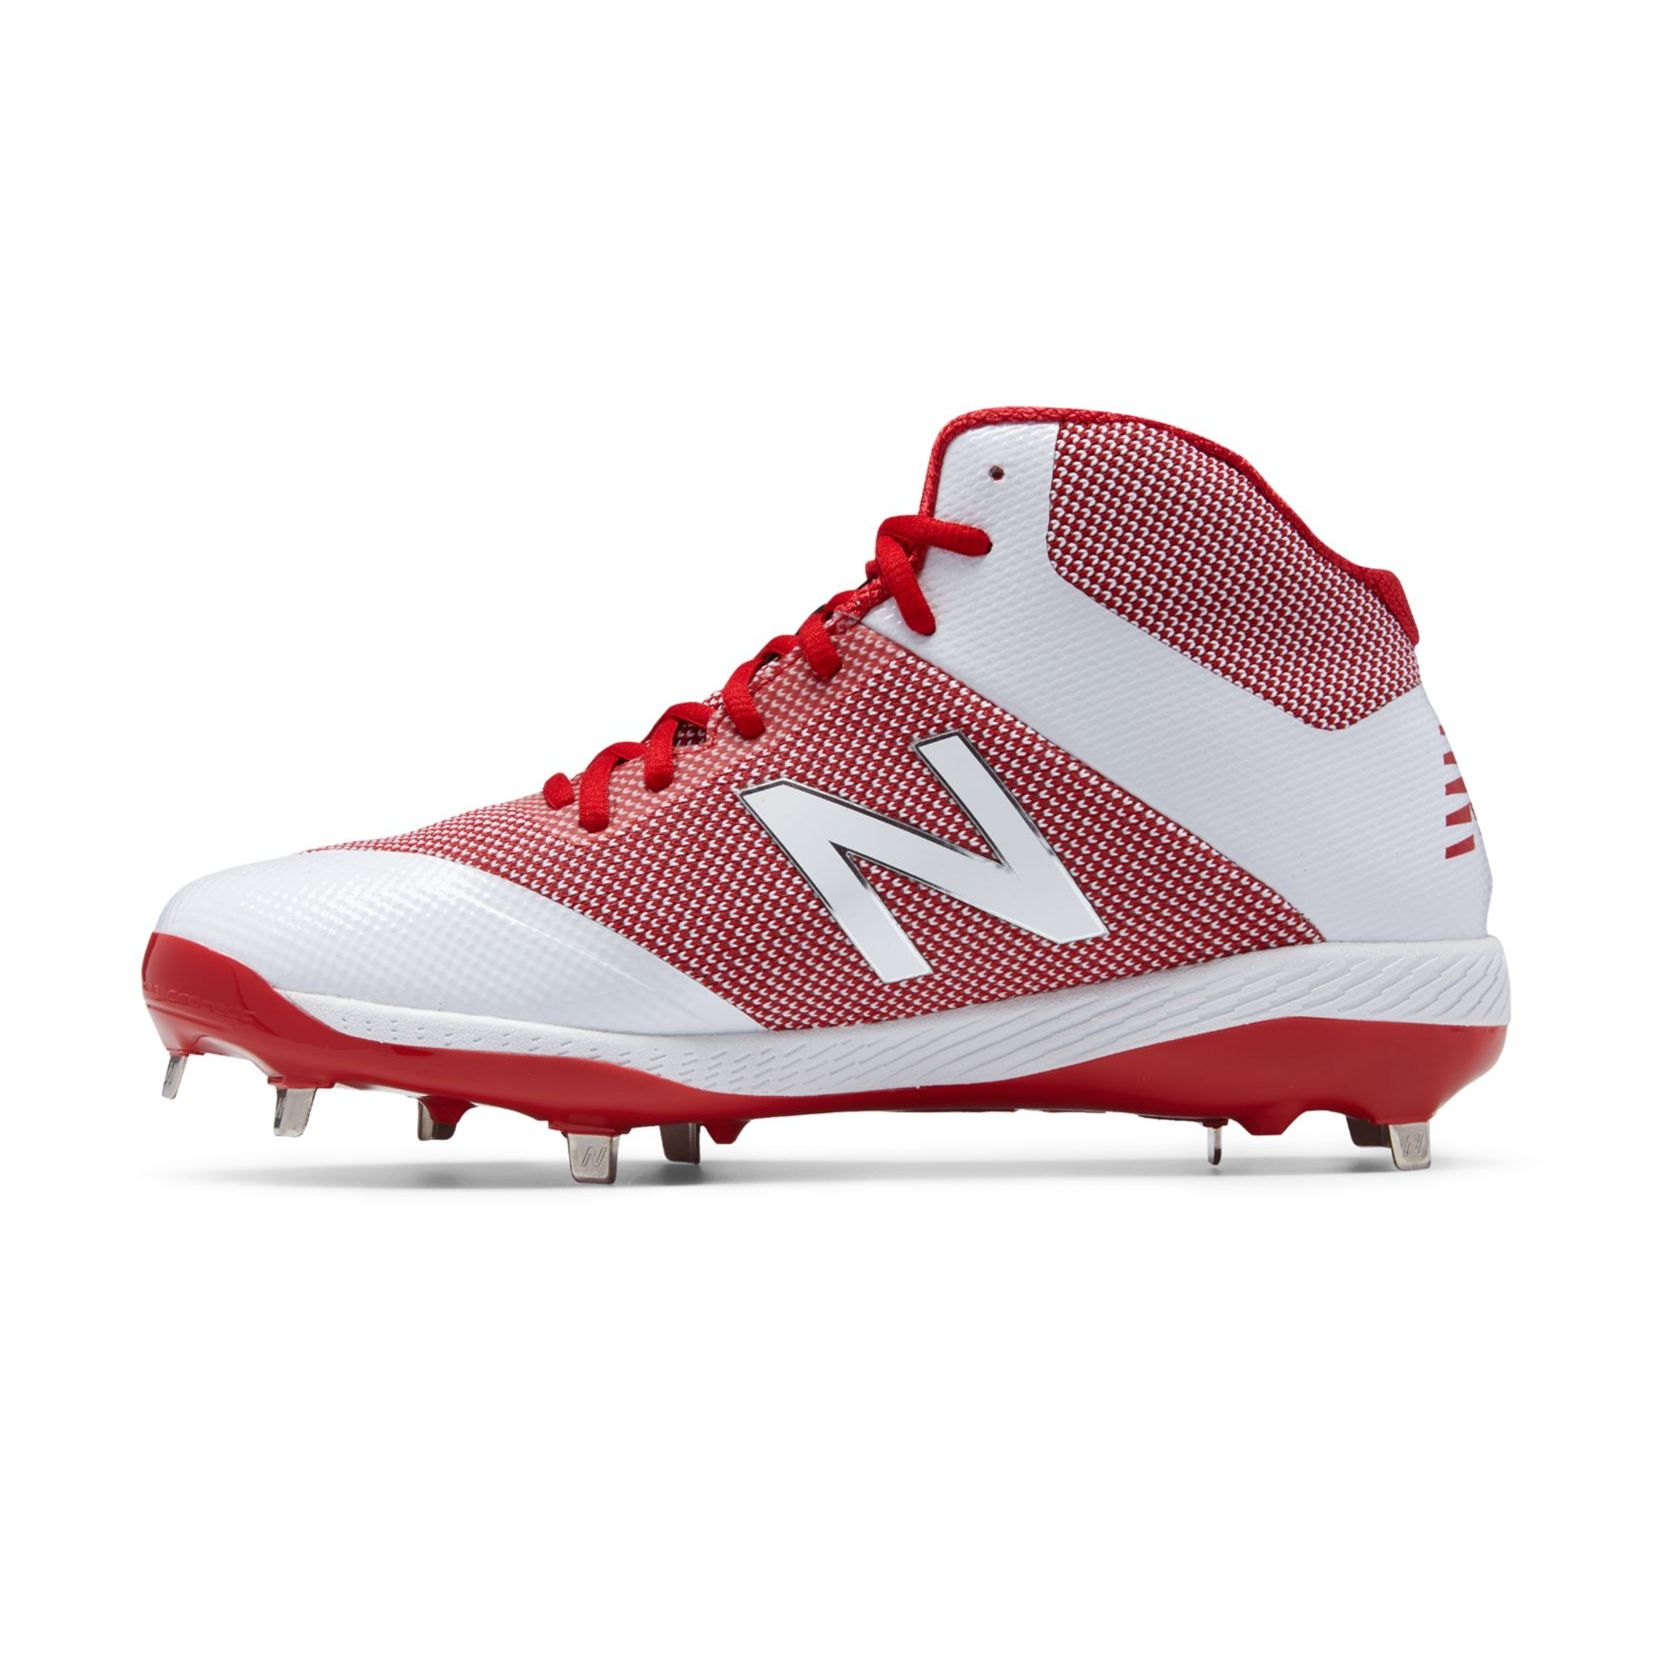 New Balance Mid Cut M4040tr4 Metal Cleat